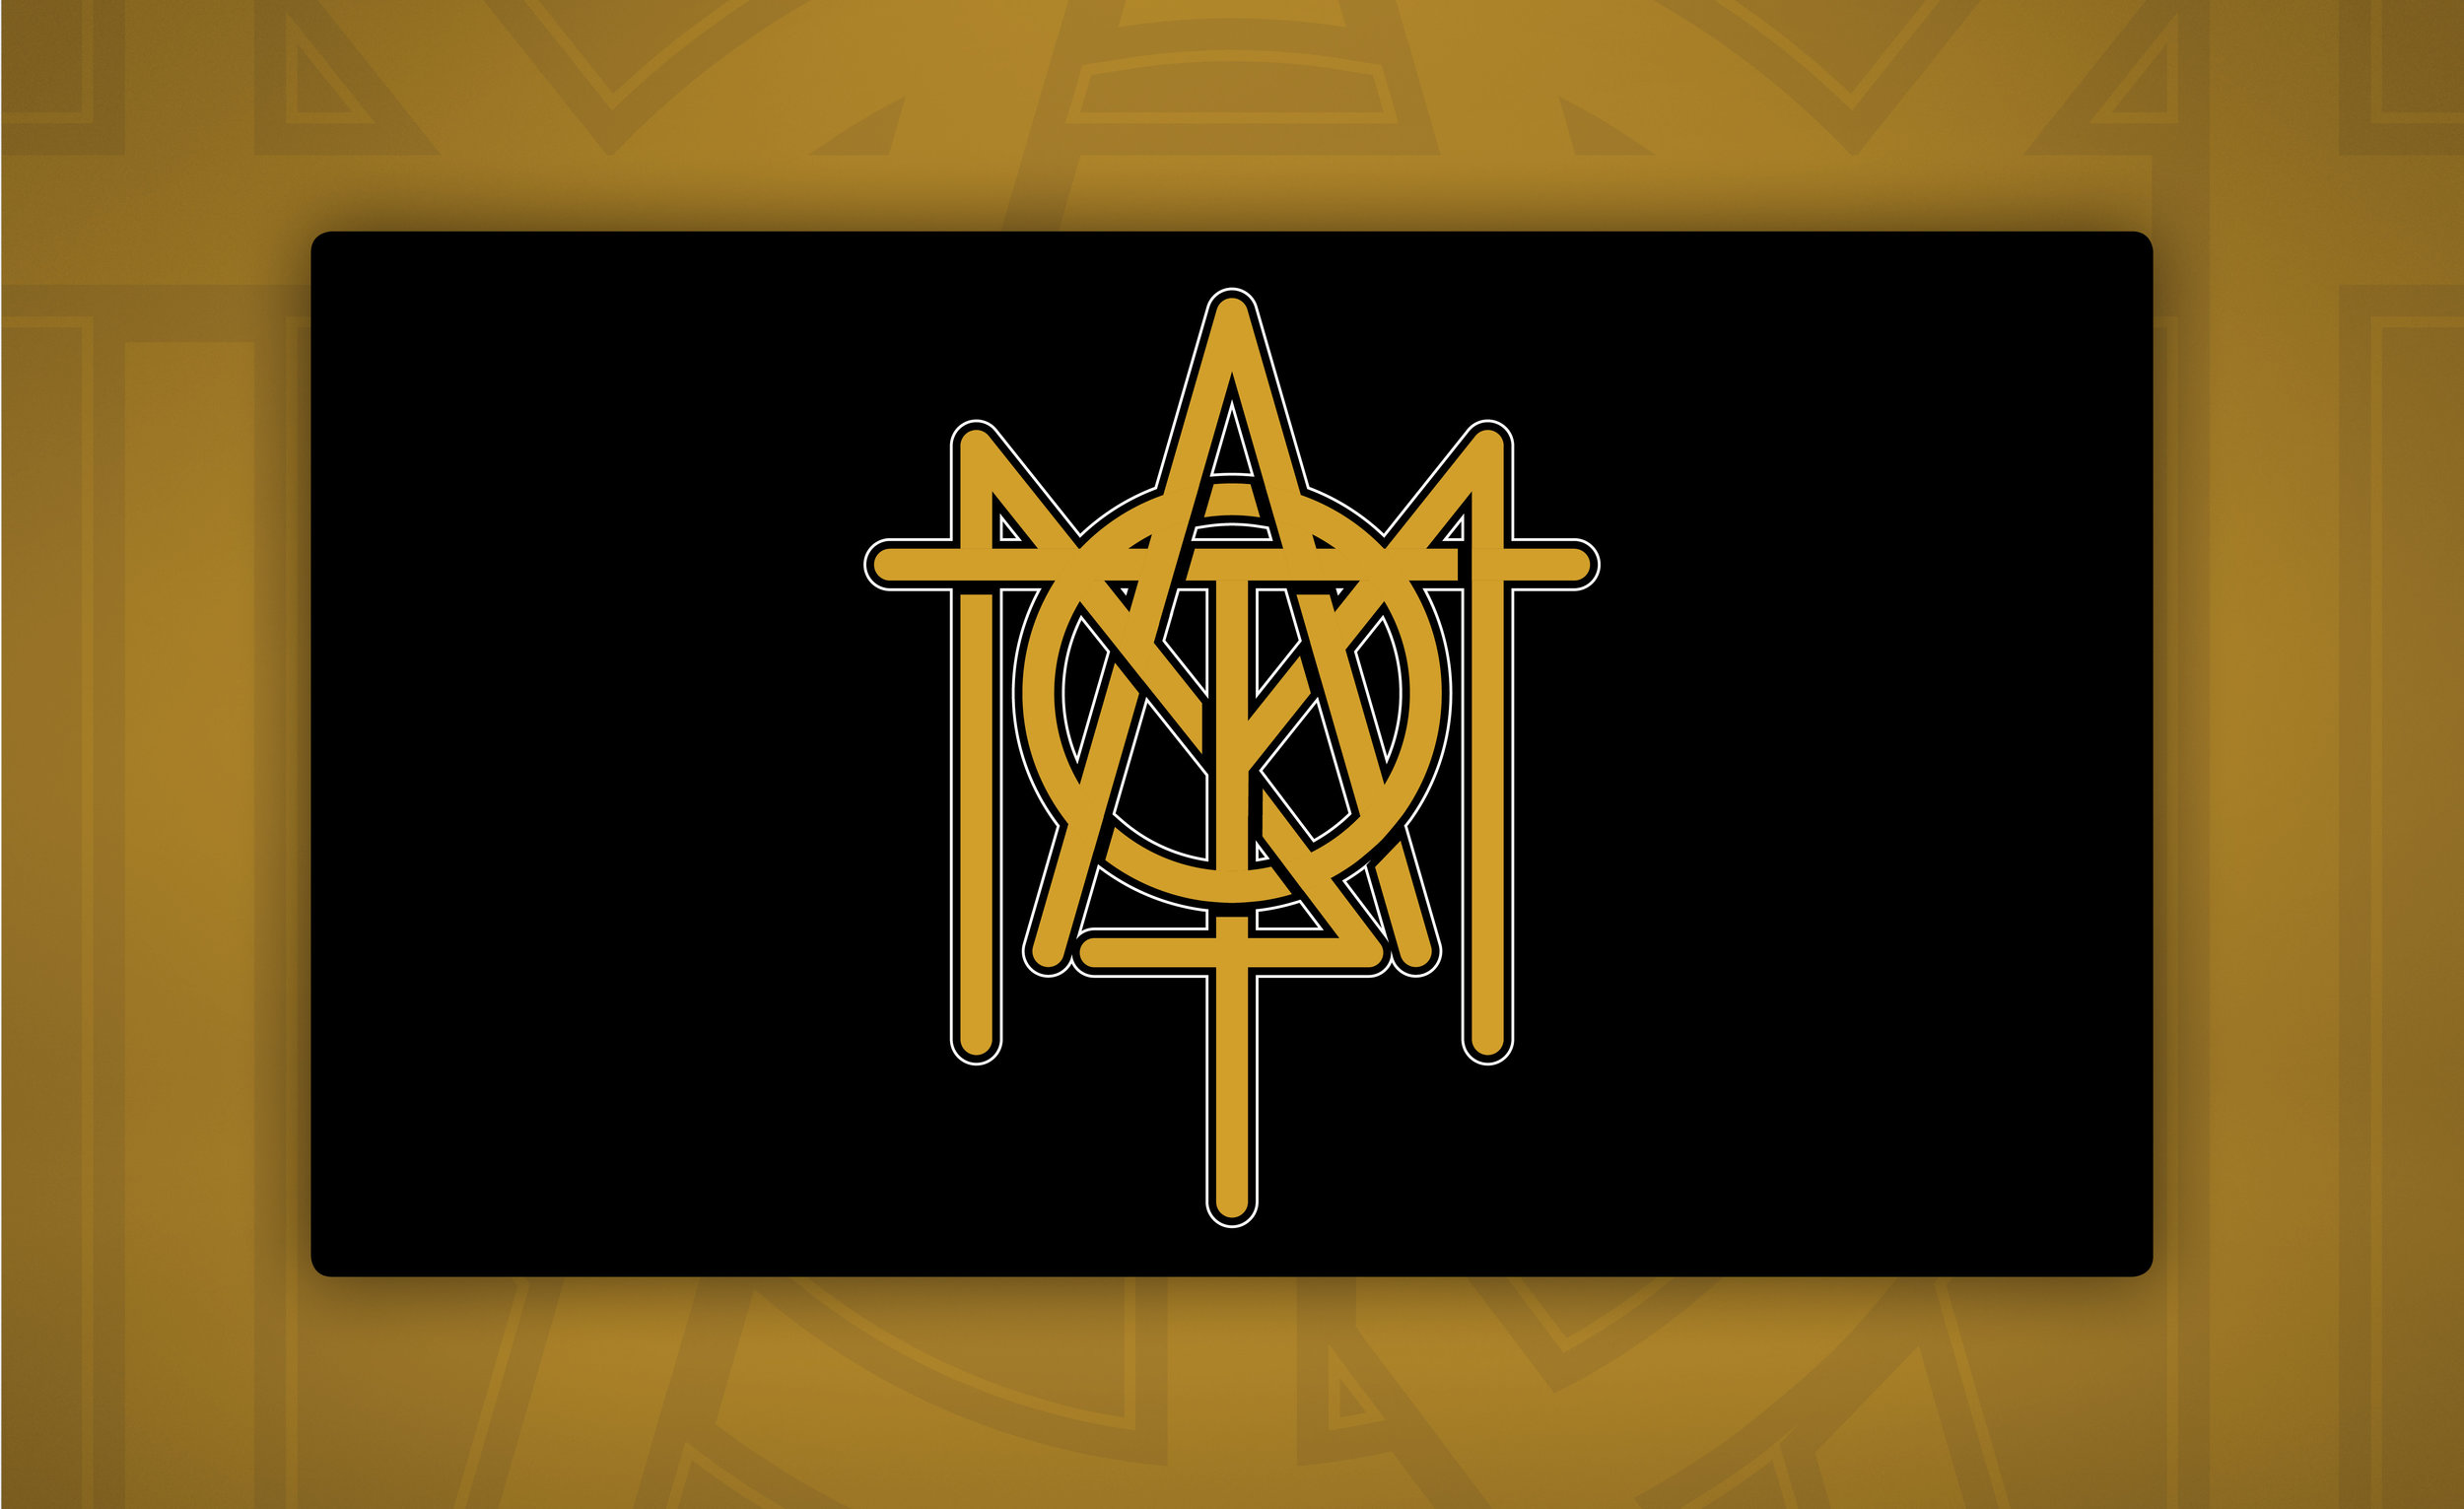 Atmost_Graphic_Monogram.jpg